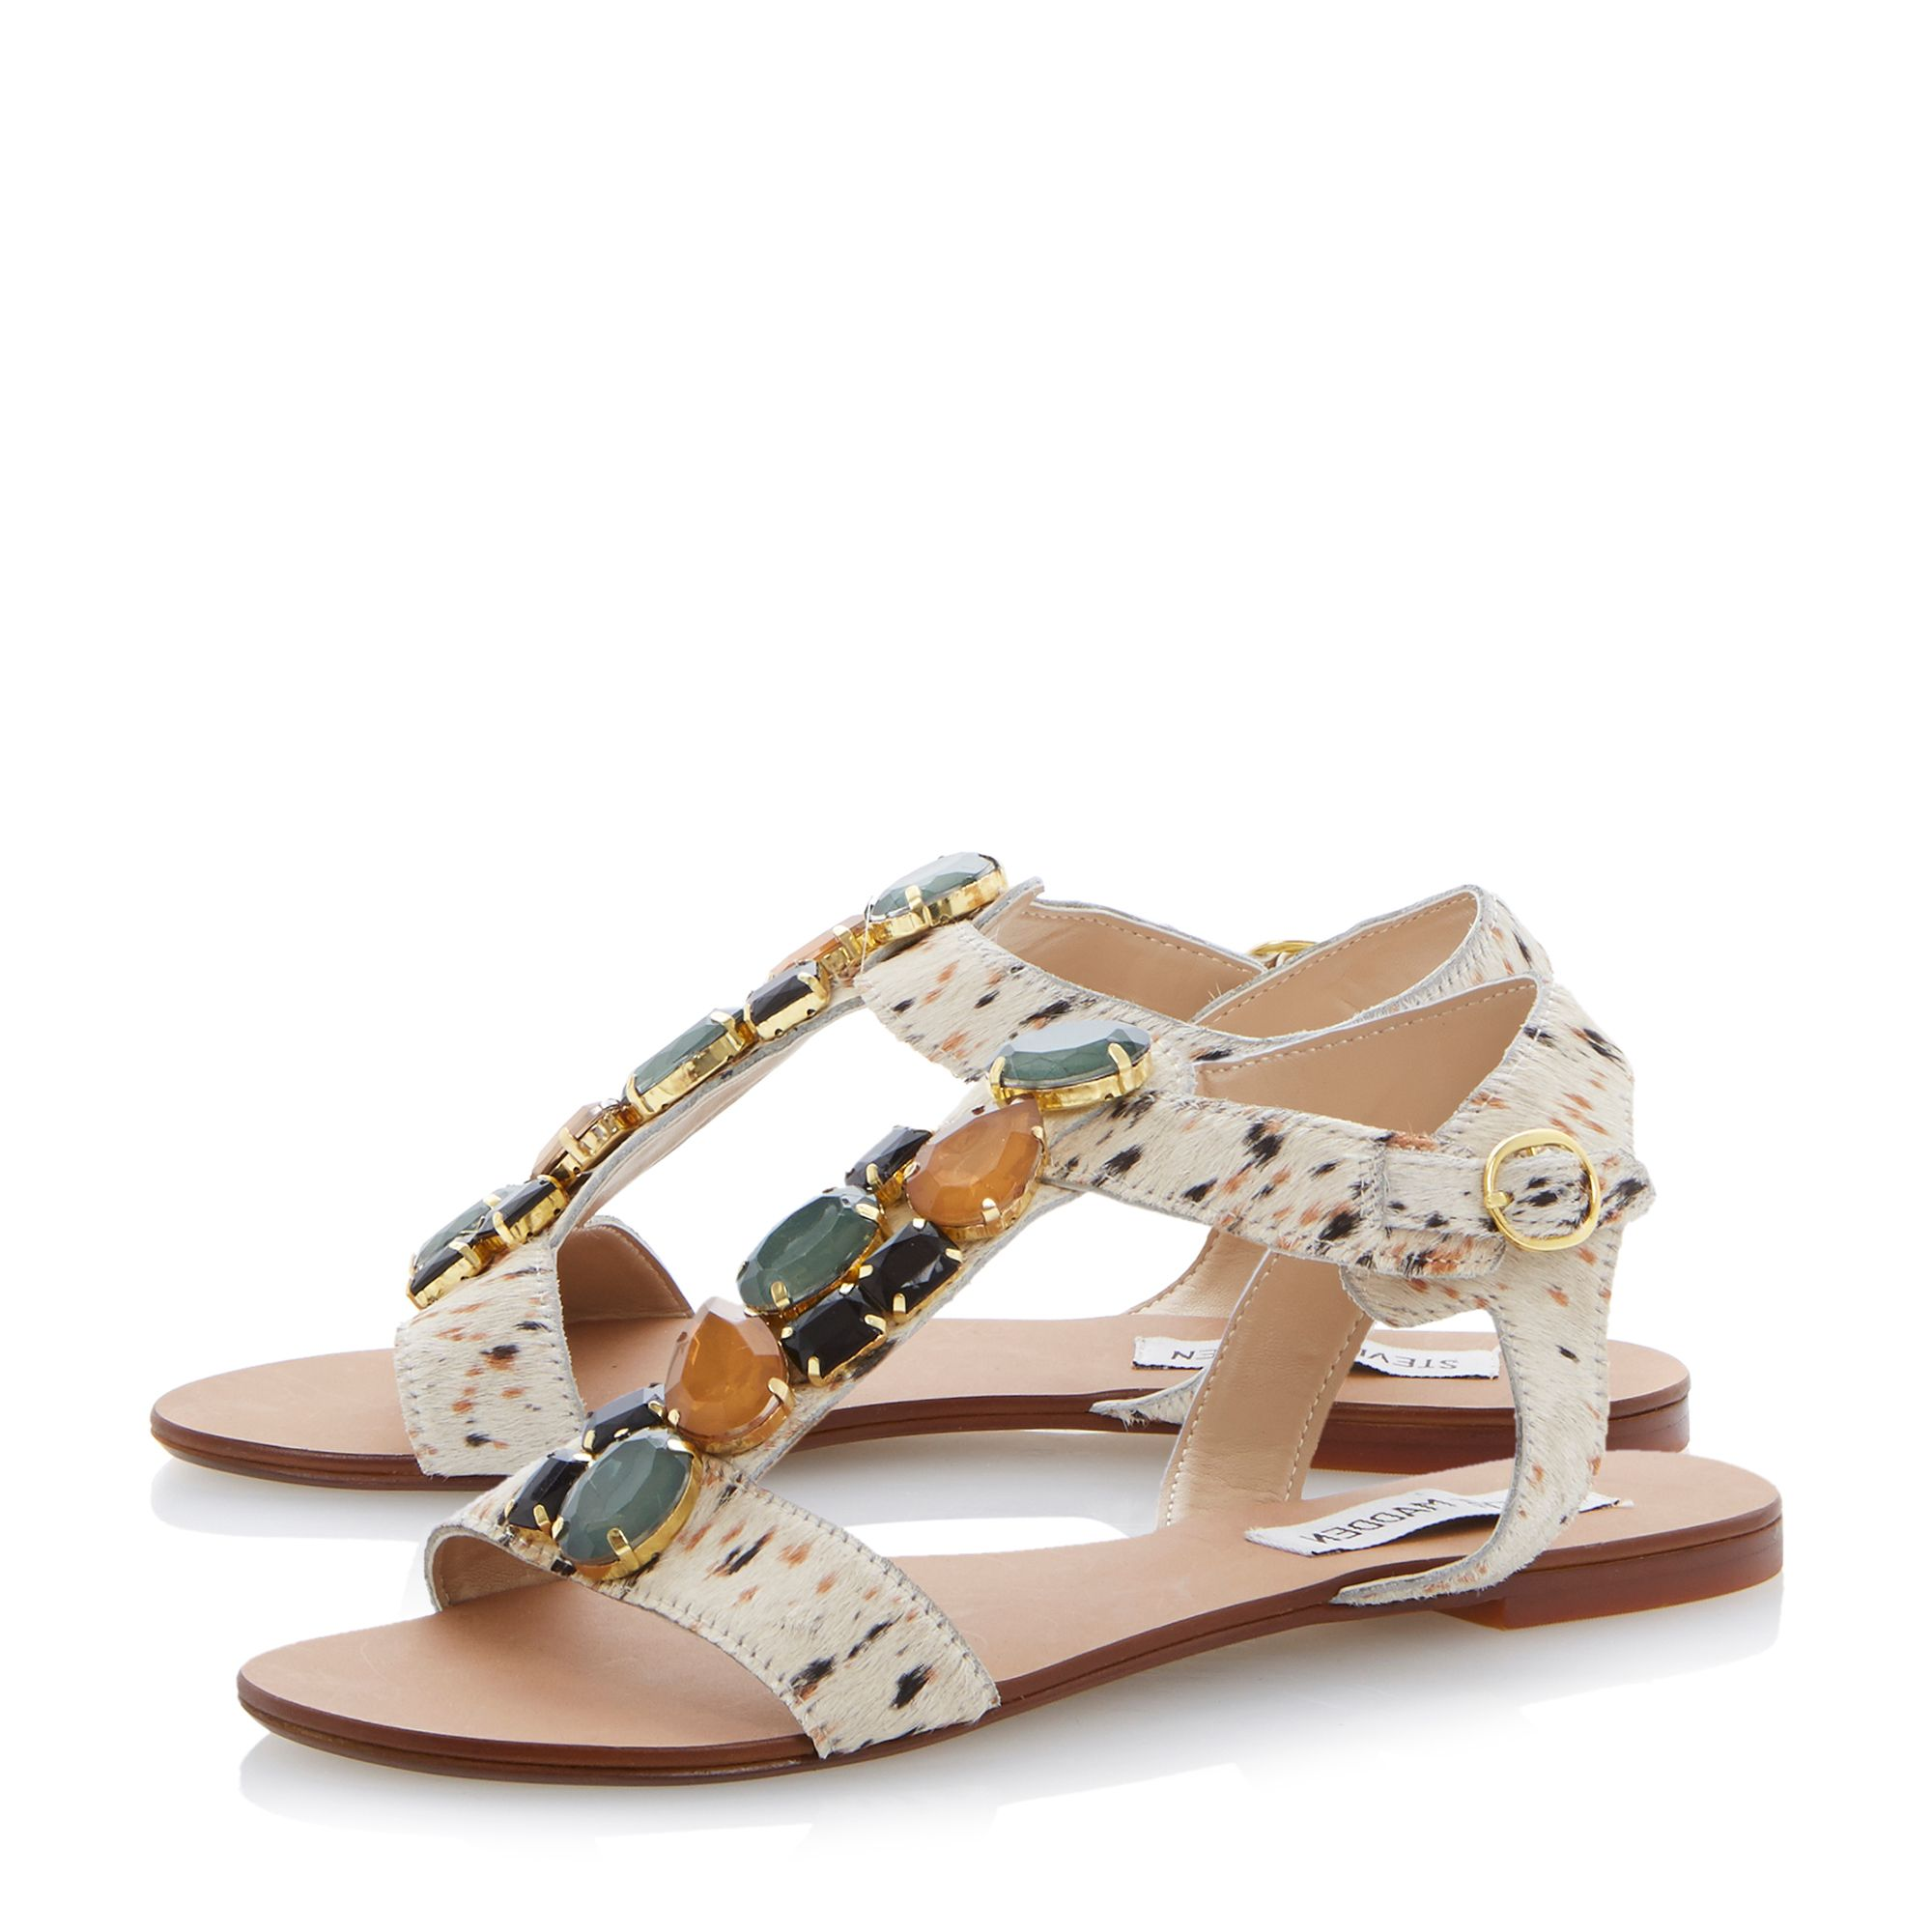 Habtat-s pony flat sandals